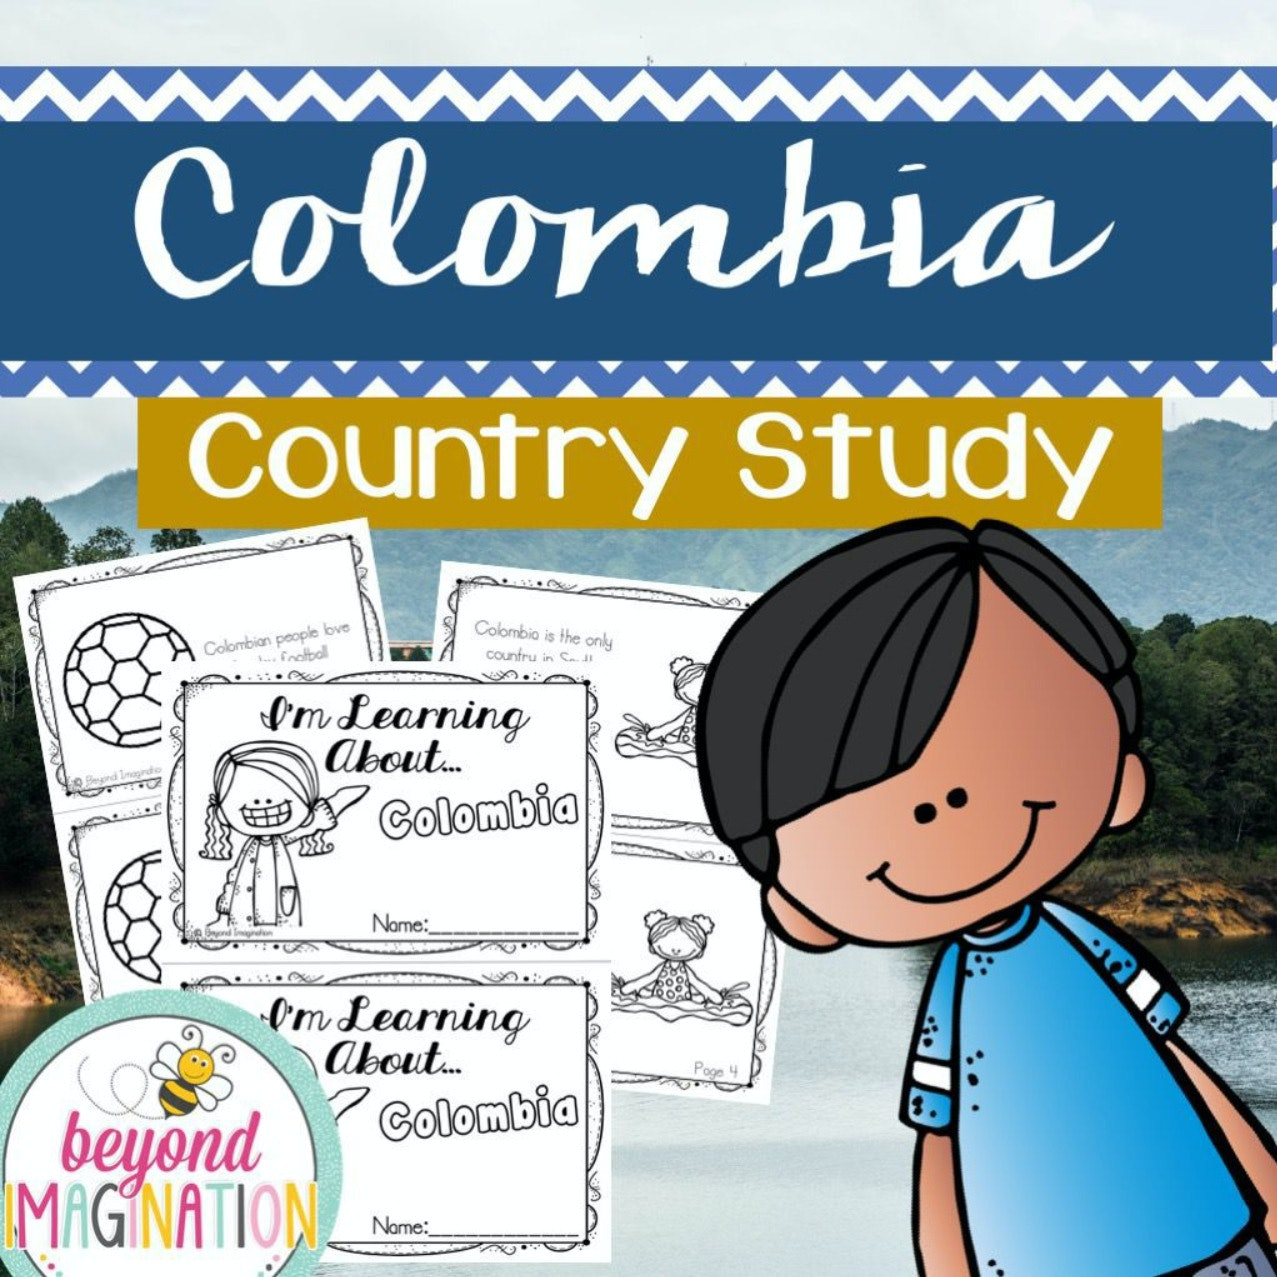 Colombia Country Study